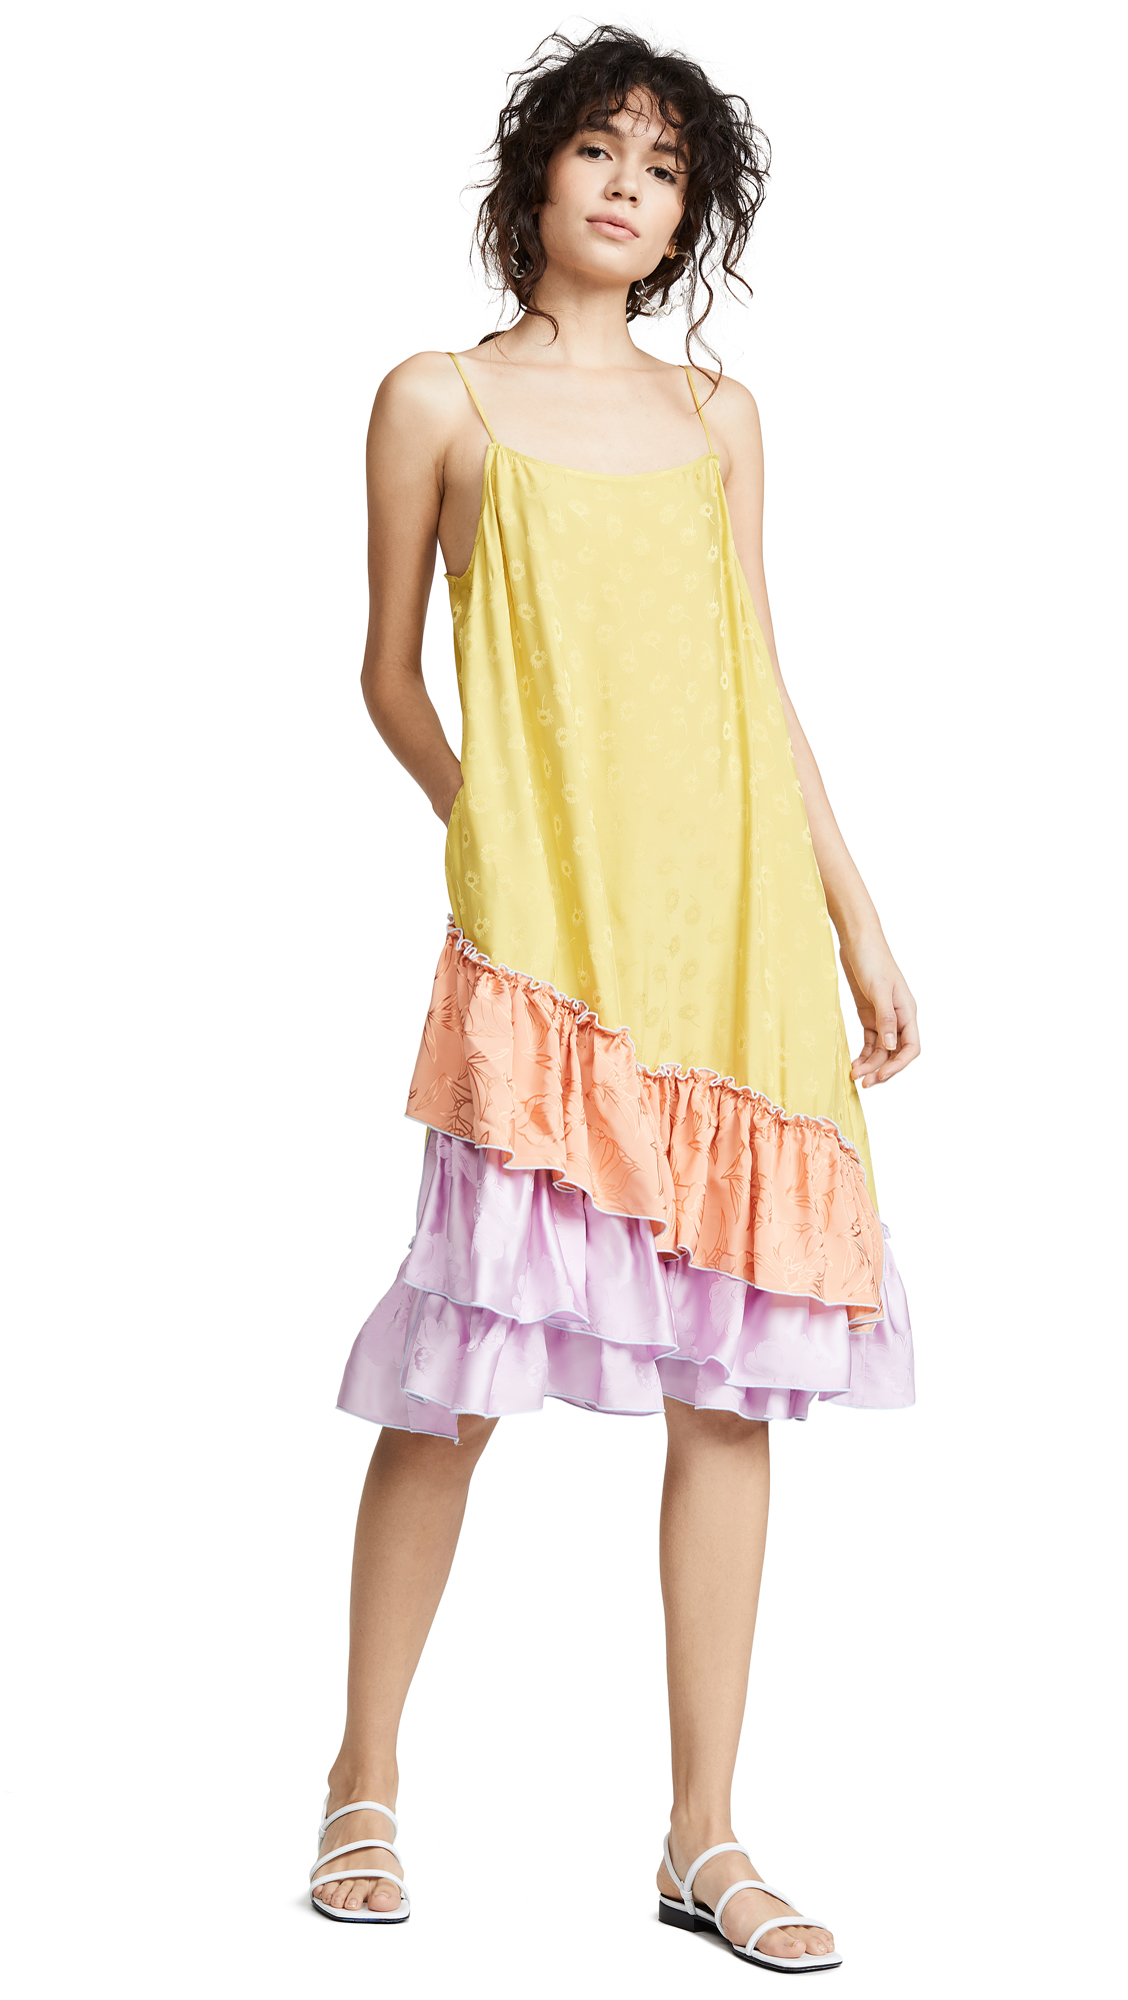 CF Goldman Short Ruffle Slip Dress - Purple/Orange/Yellow